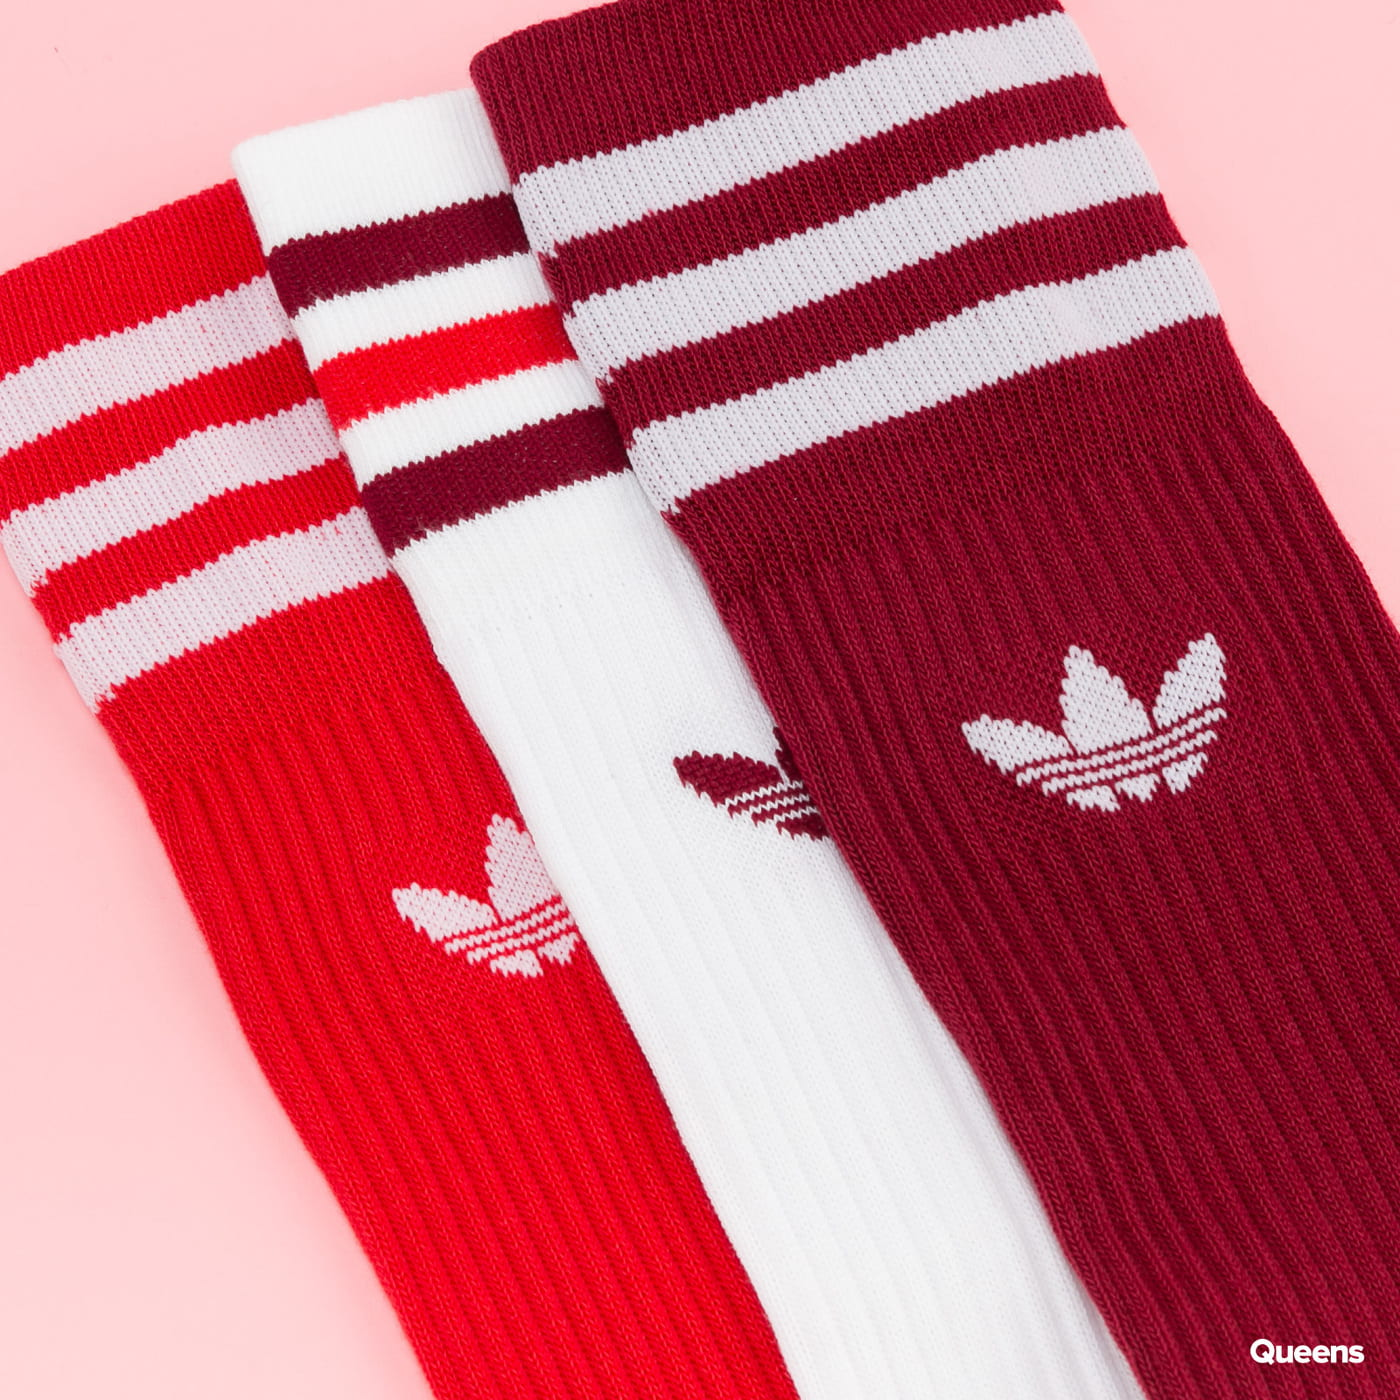 adidas Originals Solid Crew Socks 3 Pack white / red / burgundy